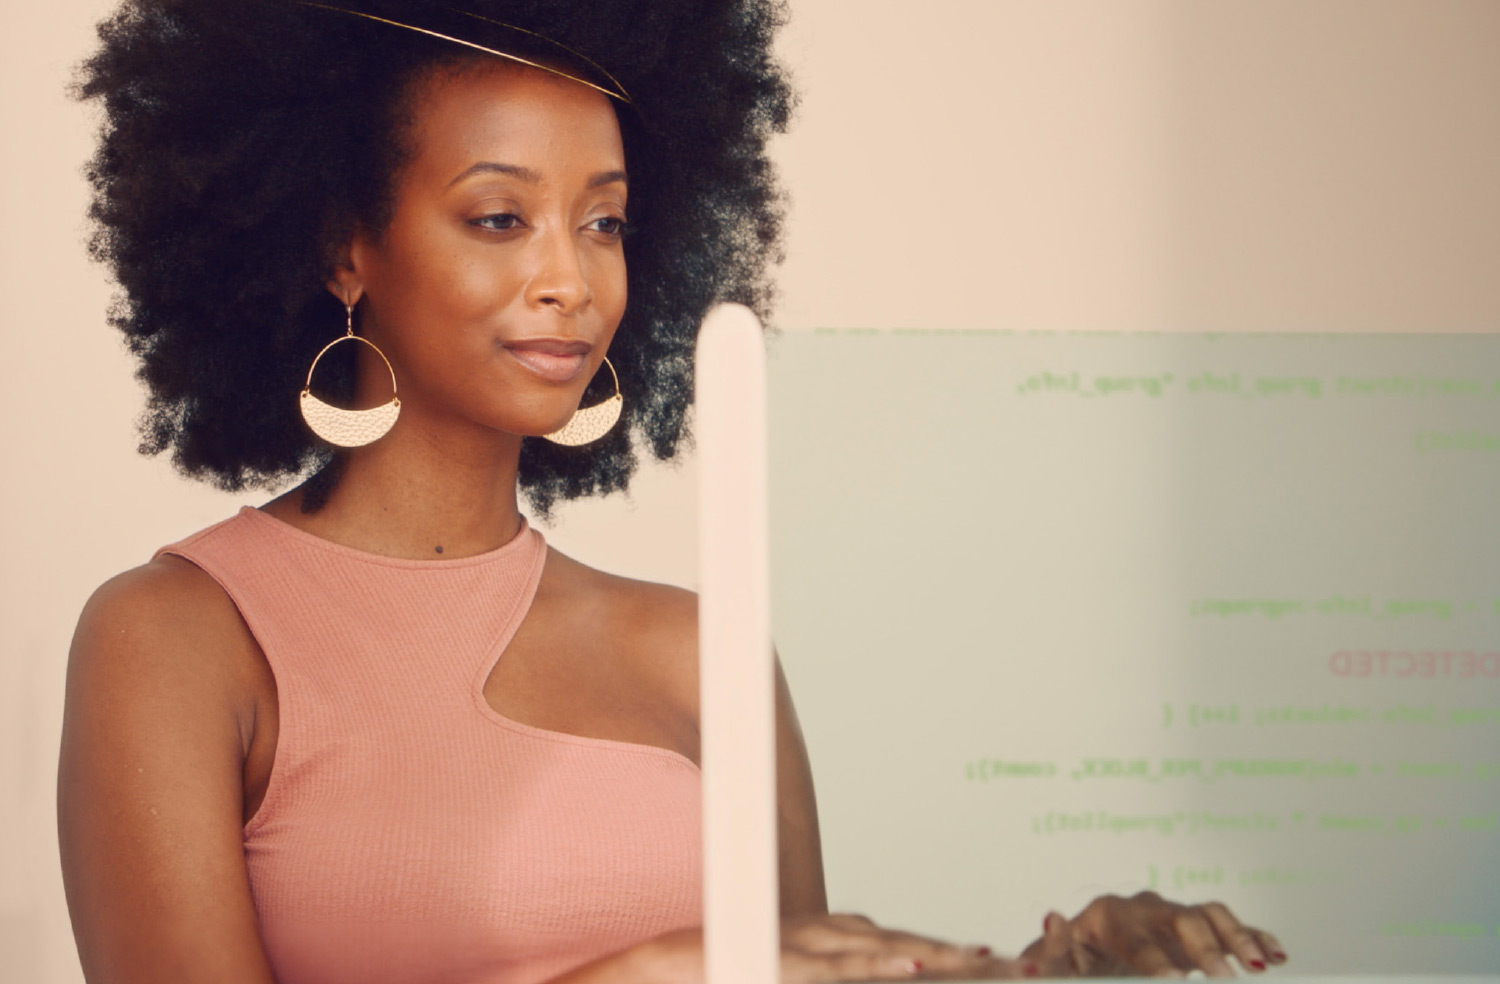 A black woman with a large afro sits behind a computer screen. Computer code is seen on the screen.